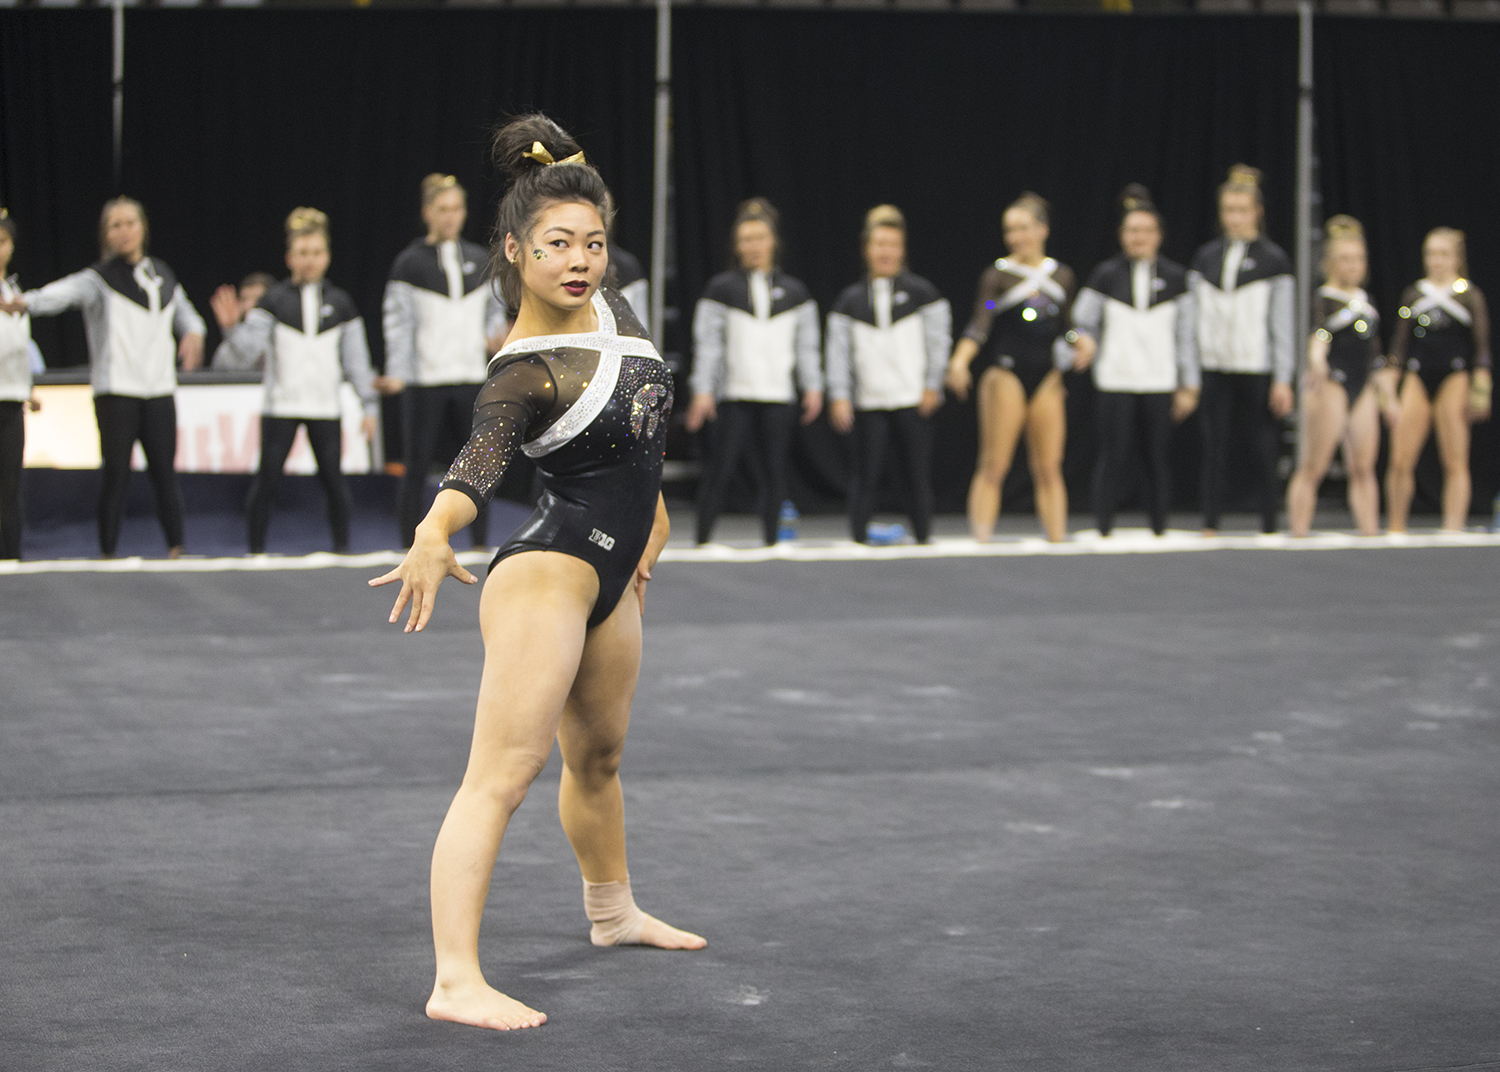 Iowa gymnast Clair Kaji competes on the floor at a meet  against Rutgers on Saturday, January 26, 2019. The Hawkeyes defeated the Scarlet Knights 194.575 to 191.675.